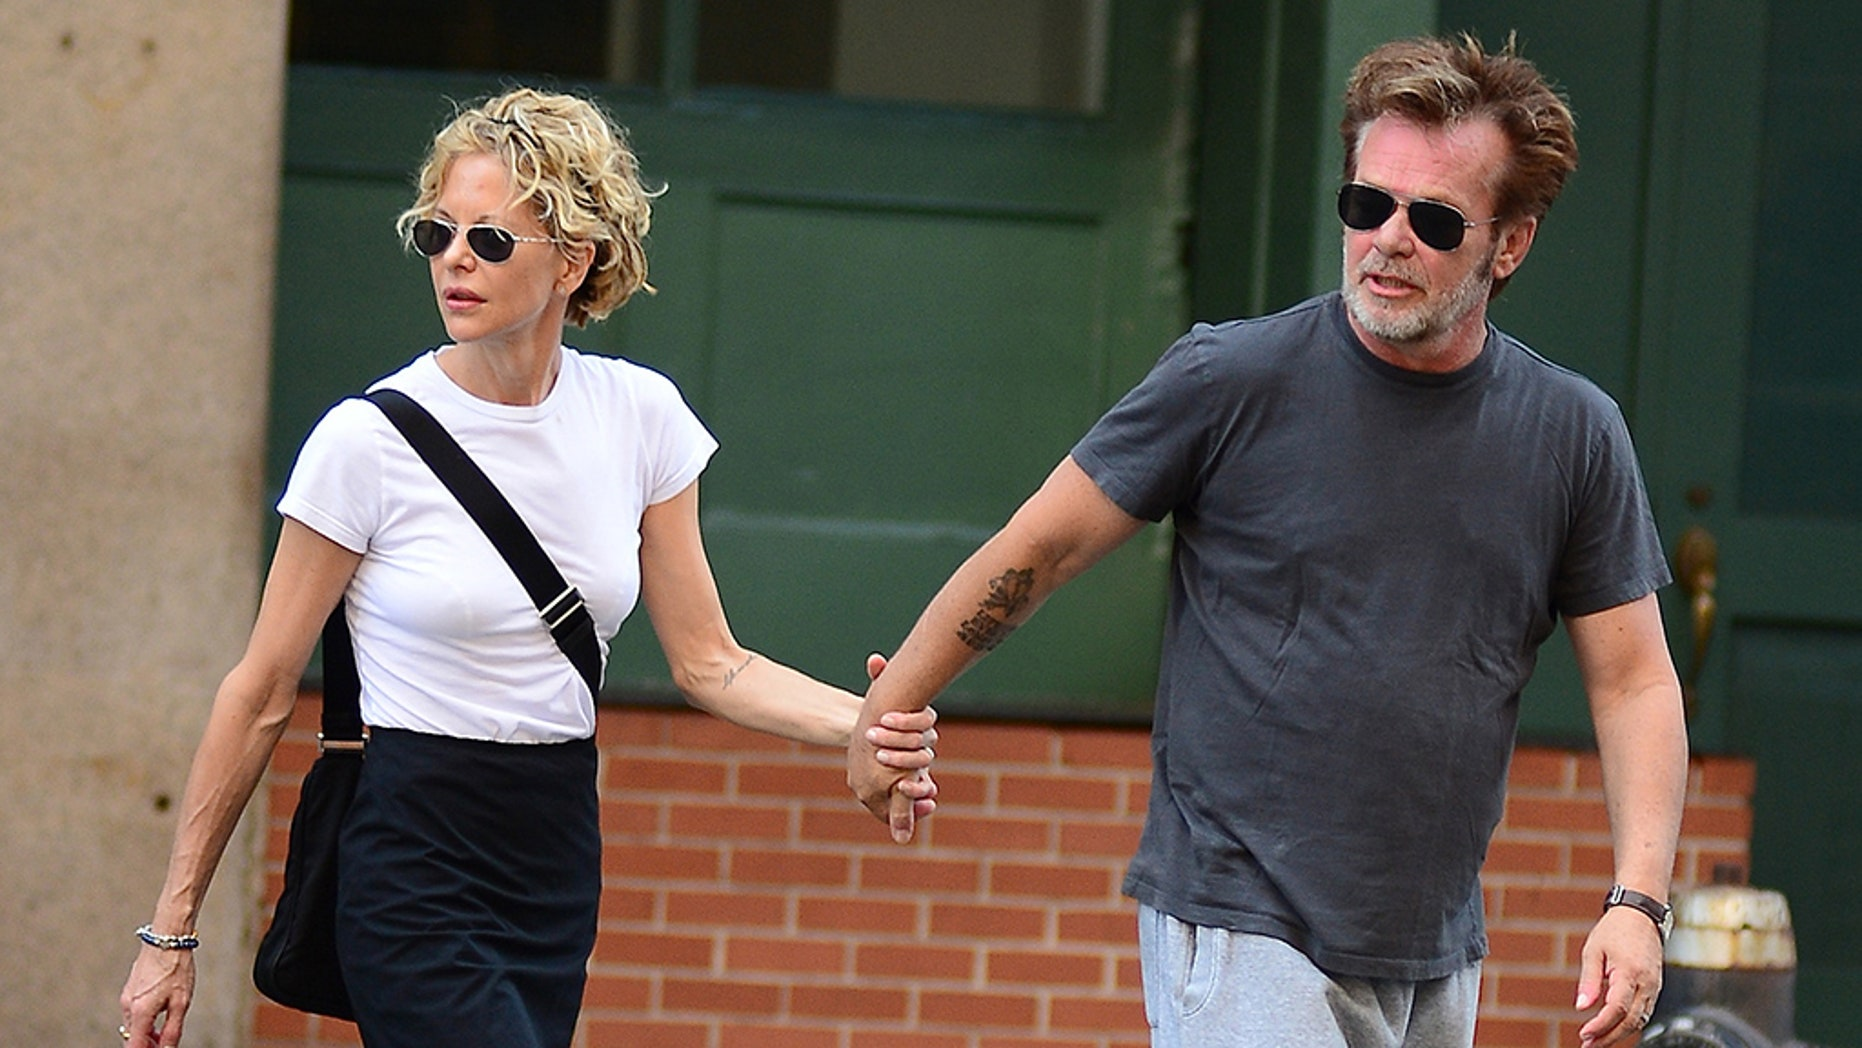 Meg Ryan Reveals Engagement To John Mellencamp In A Quirky Announcement